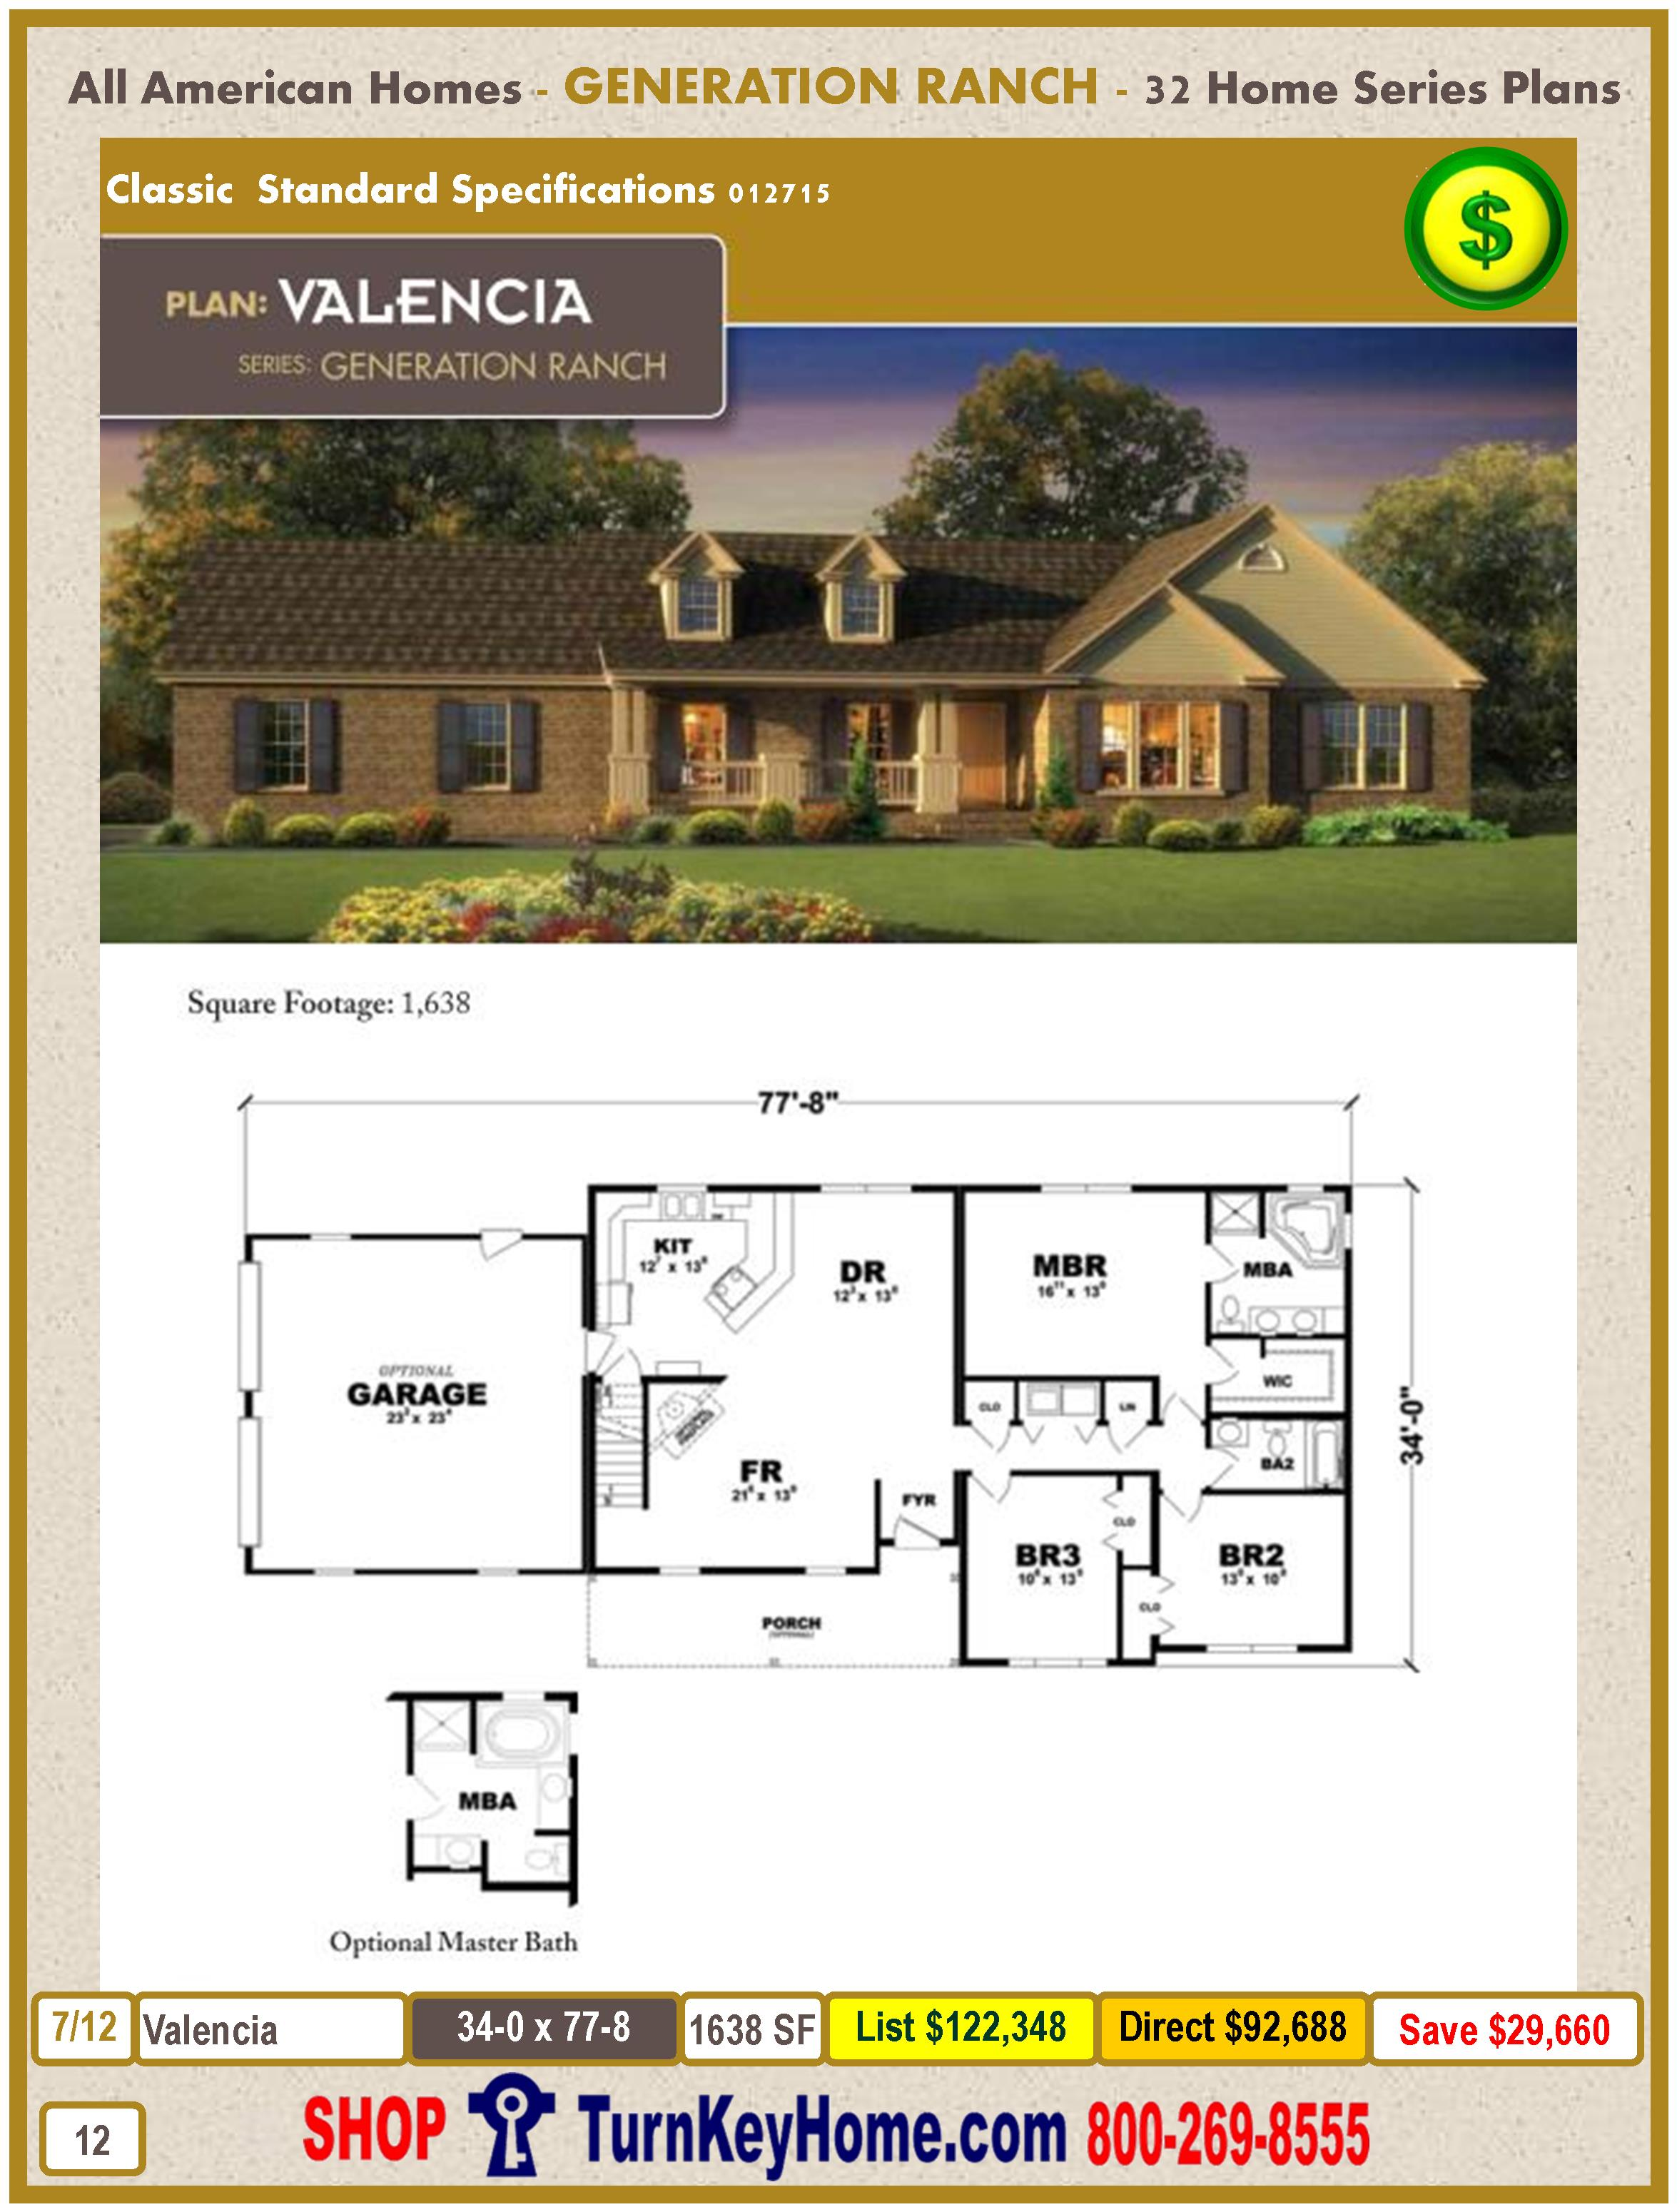 Modular.All.American.Homes.Generation.Ranch.Home.Series.Catalog.Page.12.Valencia.Direct.Price.021415